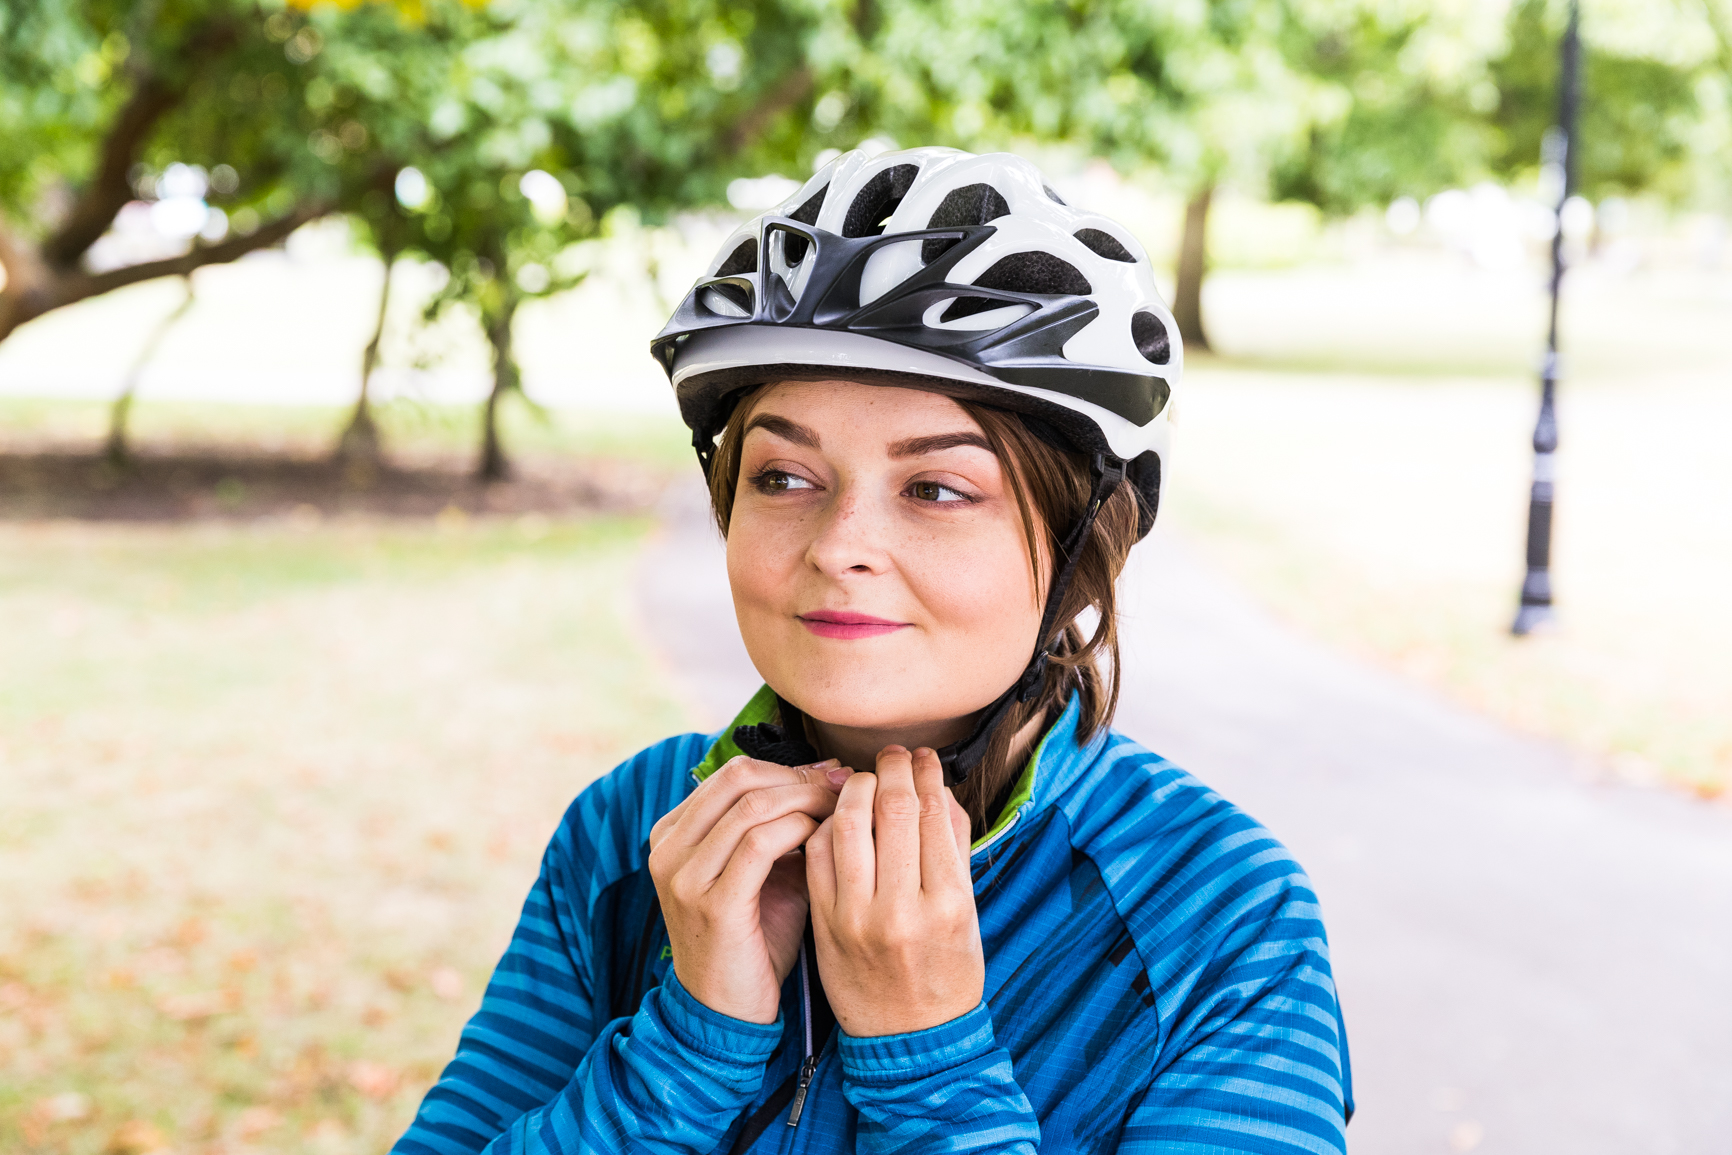 Woman cyclist clipping helmet